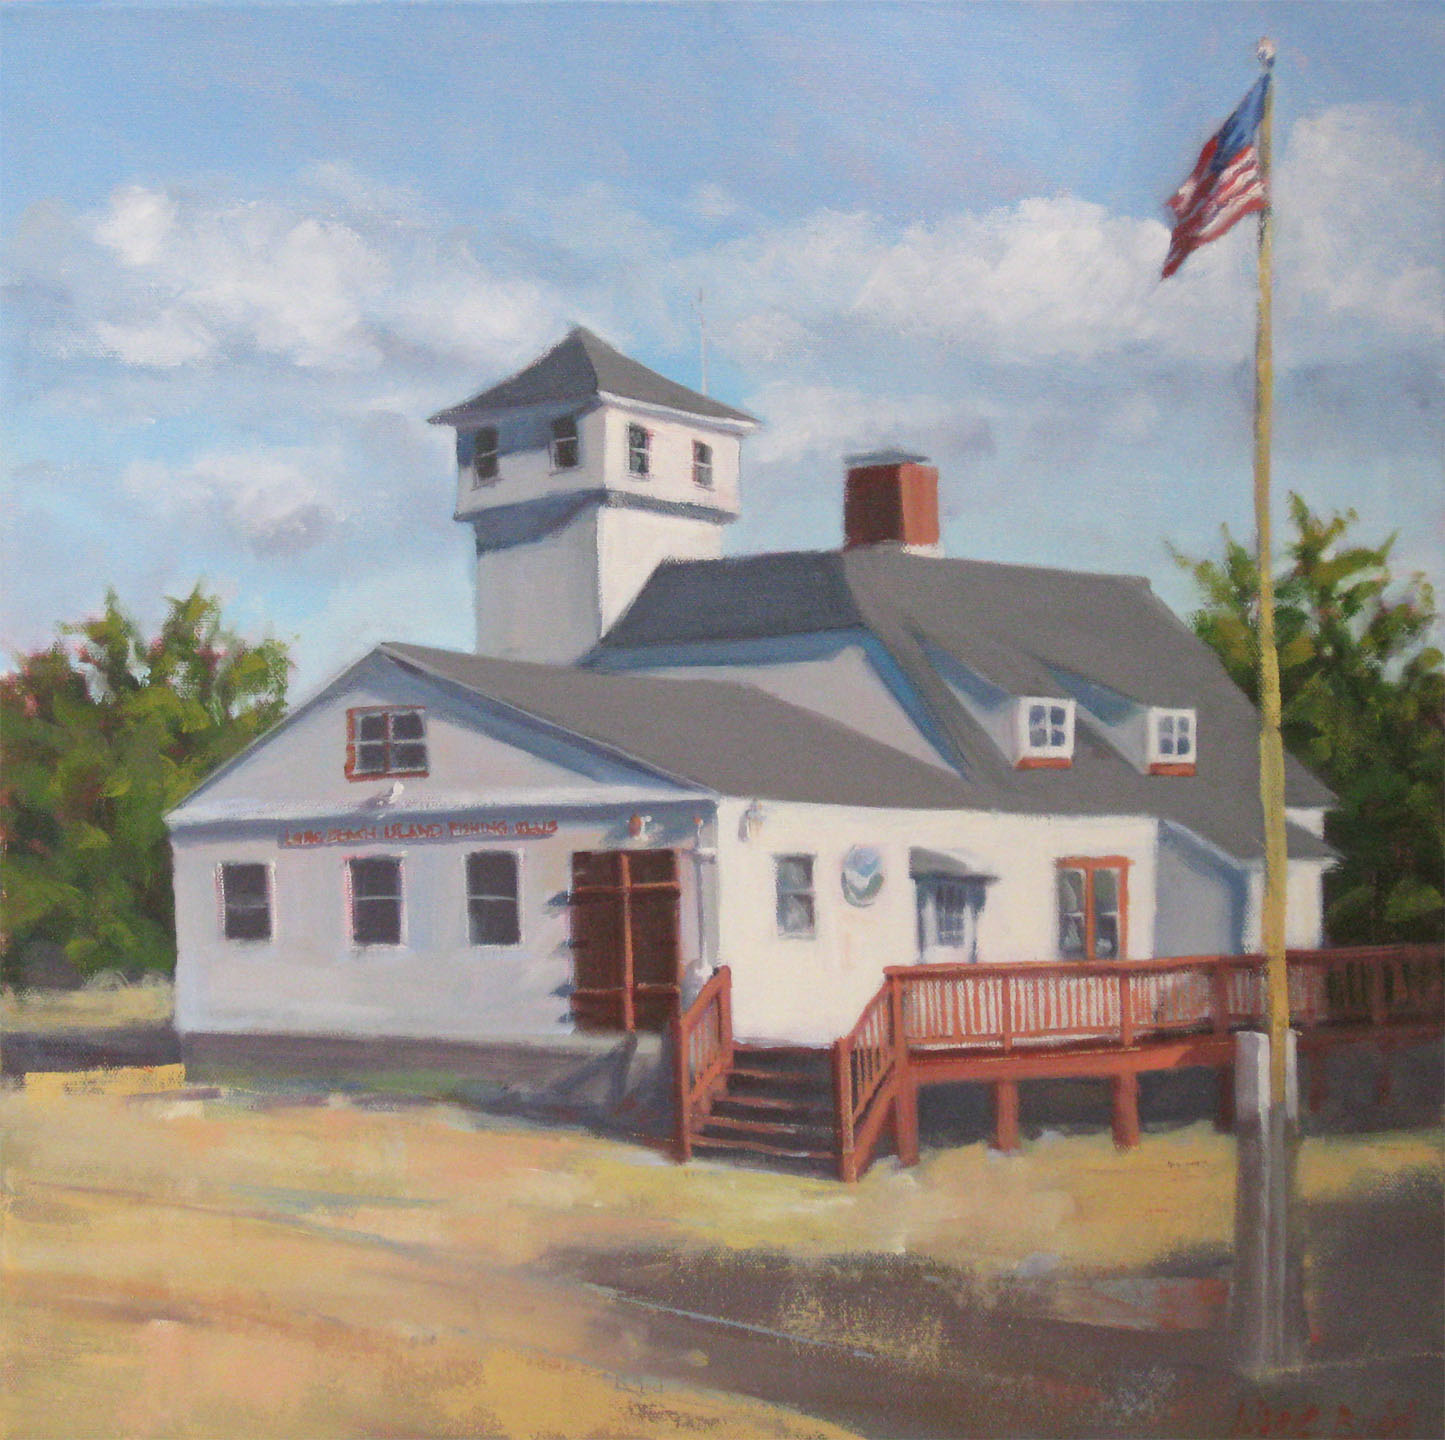 LBI Fishing Club 18x18